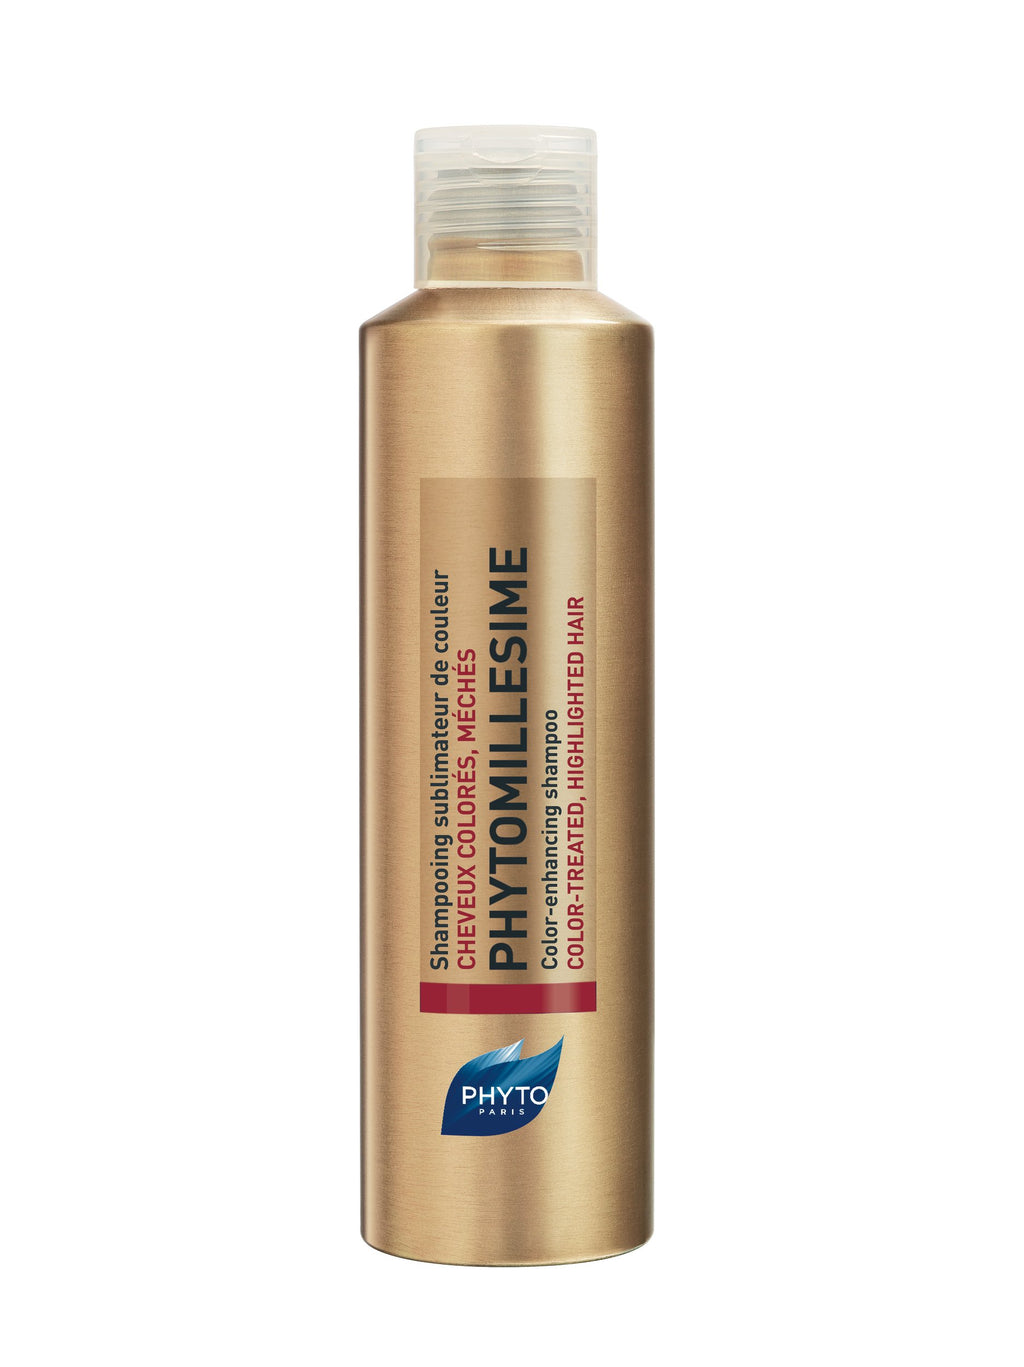 phyto-phytomillesime-colour-enhancing-shampoo-cosmetics-online